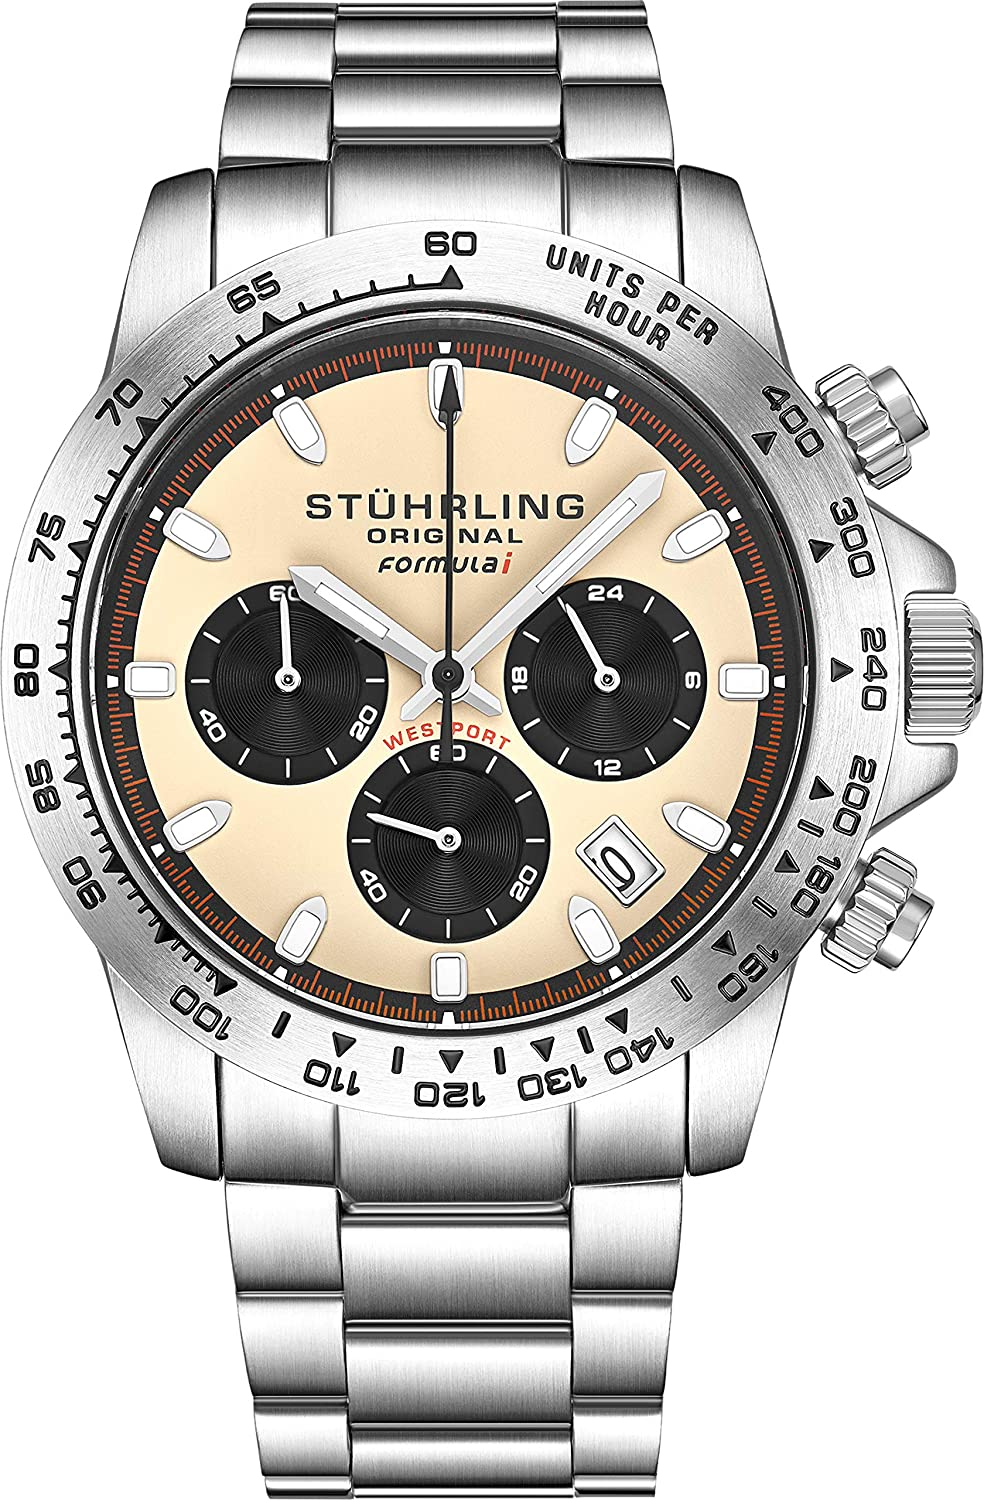 Top 20 Mens Chronograph Watches on a Reasonable Budget 2019